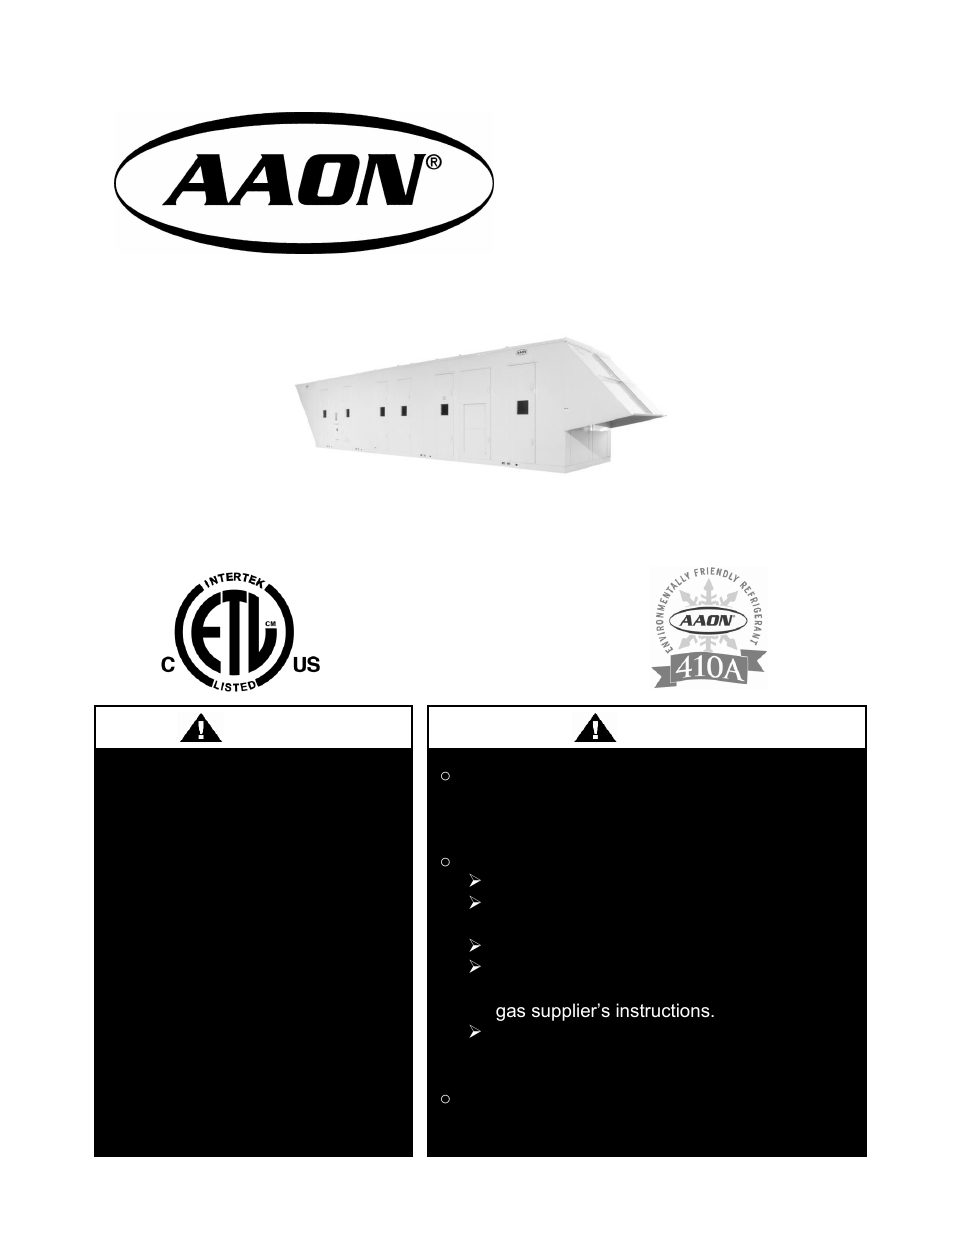 aaon rl 240 page1 wiring diagram k01299 aaon aaon rn catalog \u2022 indy500 co  at gsmx.co